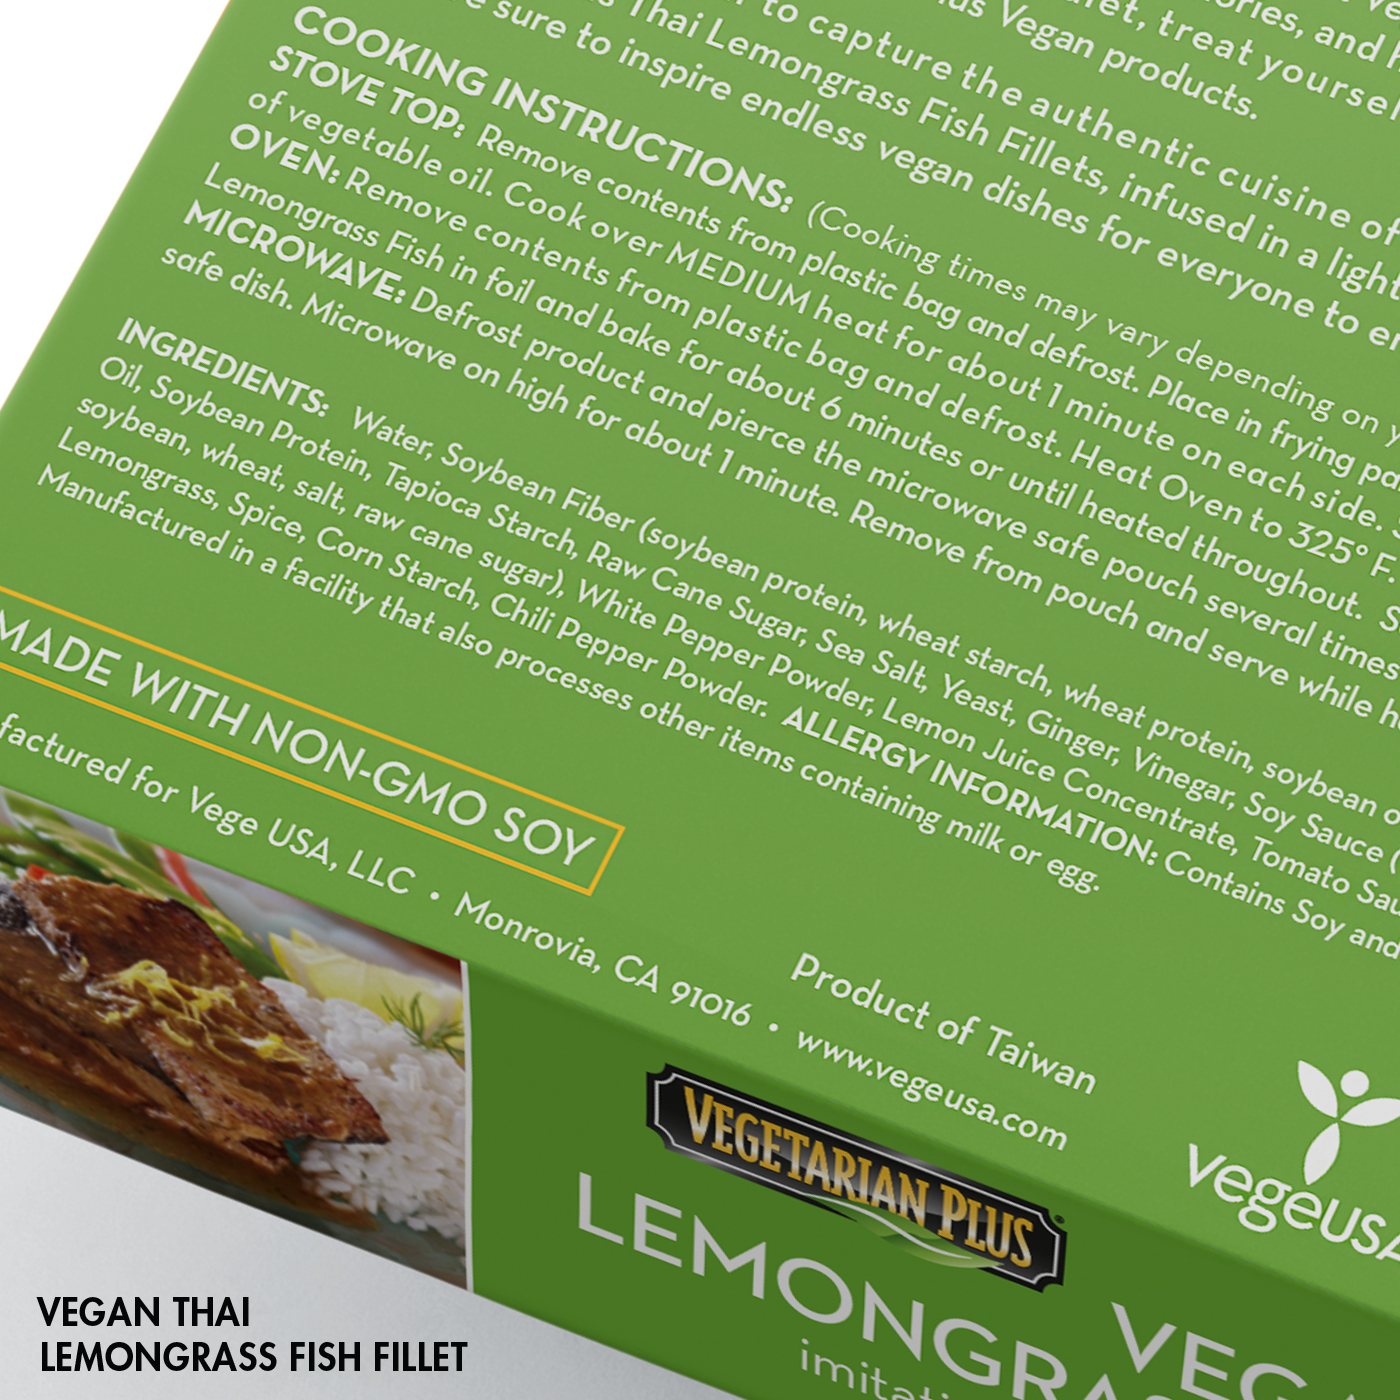 Vegan Thai Lemongrass Fish Fillets Cooking Instructions